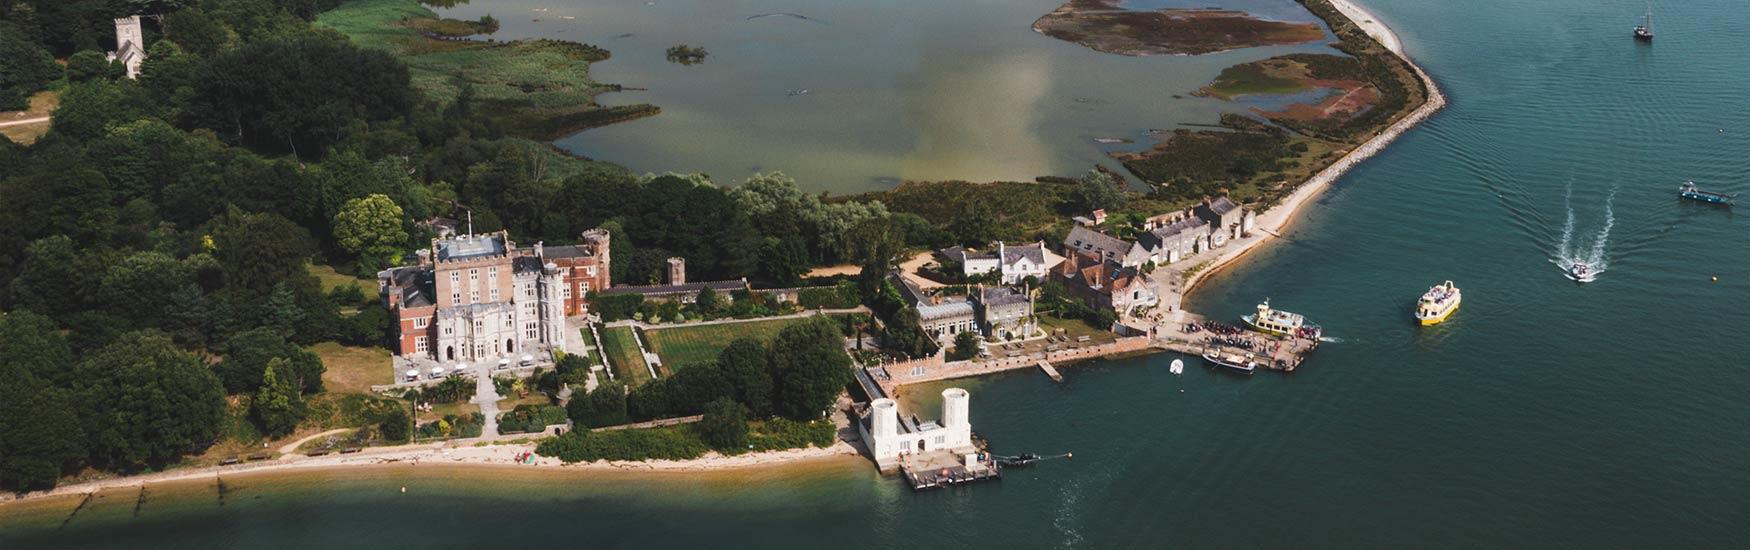 Aerial view of Brownsea island on a summers day